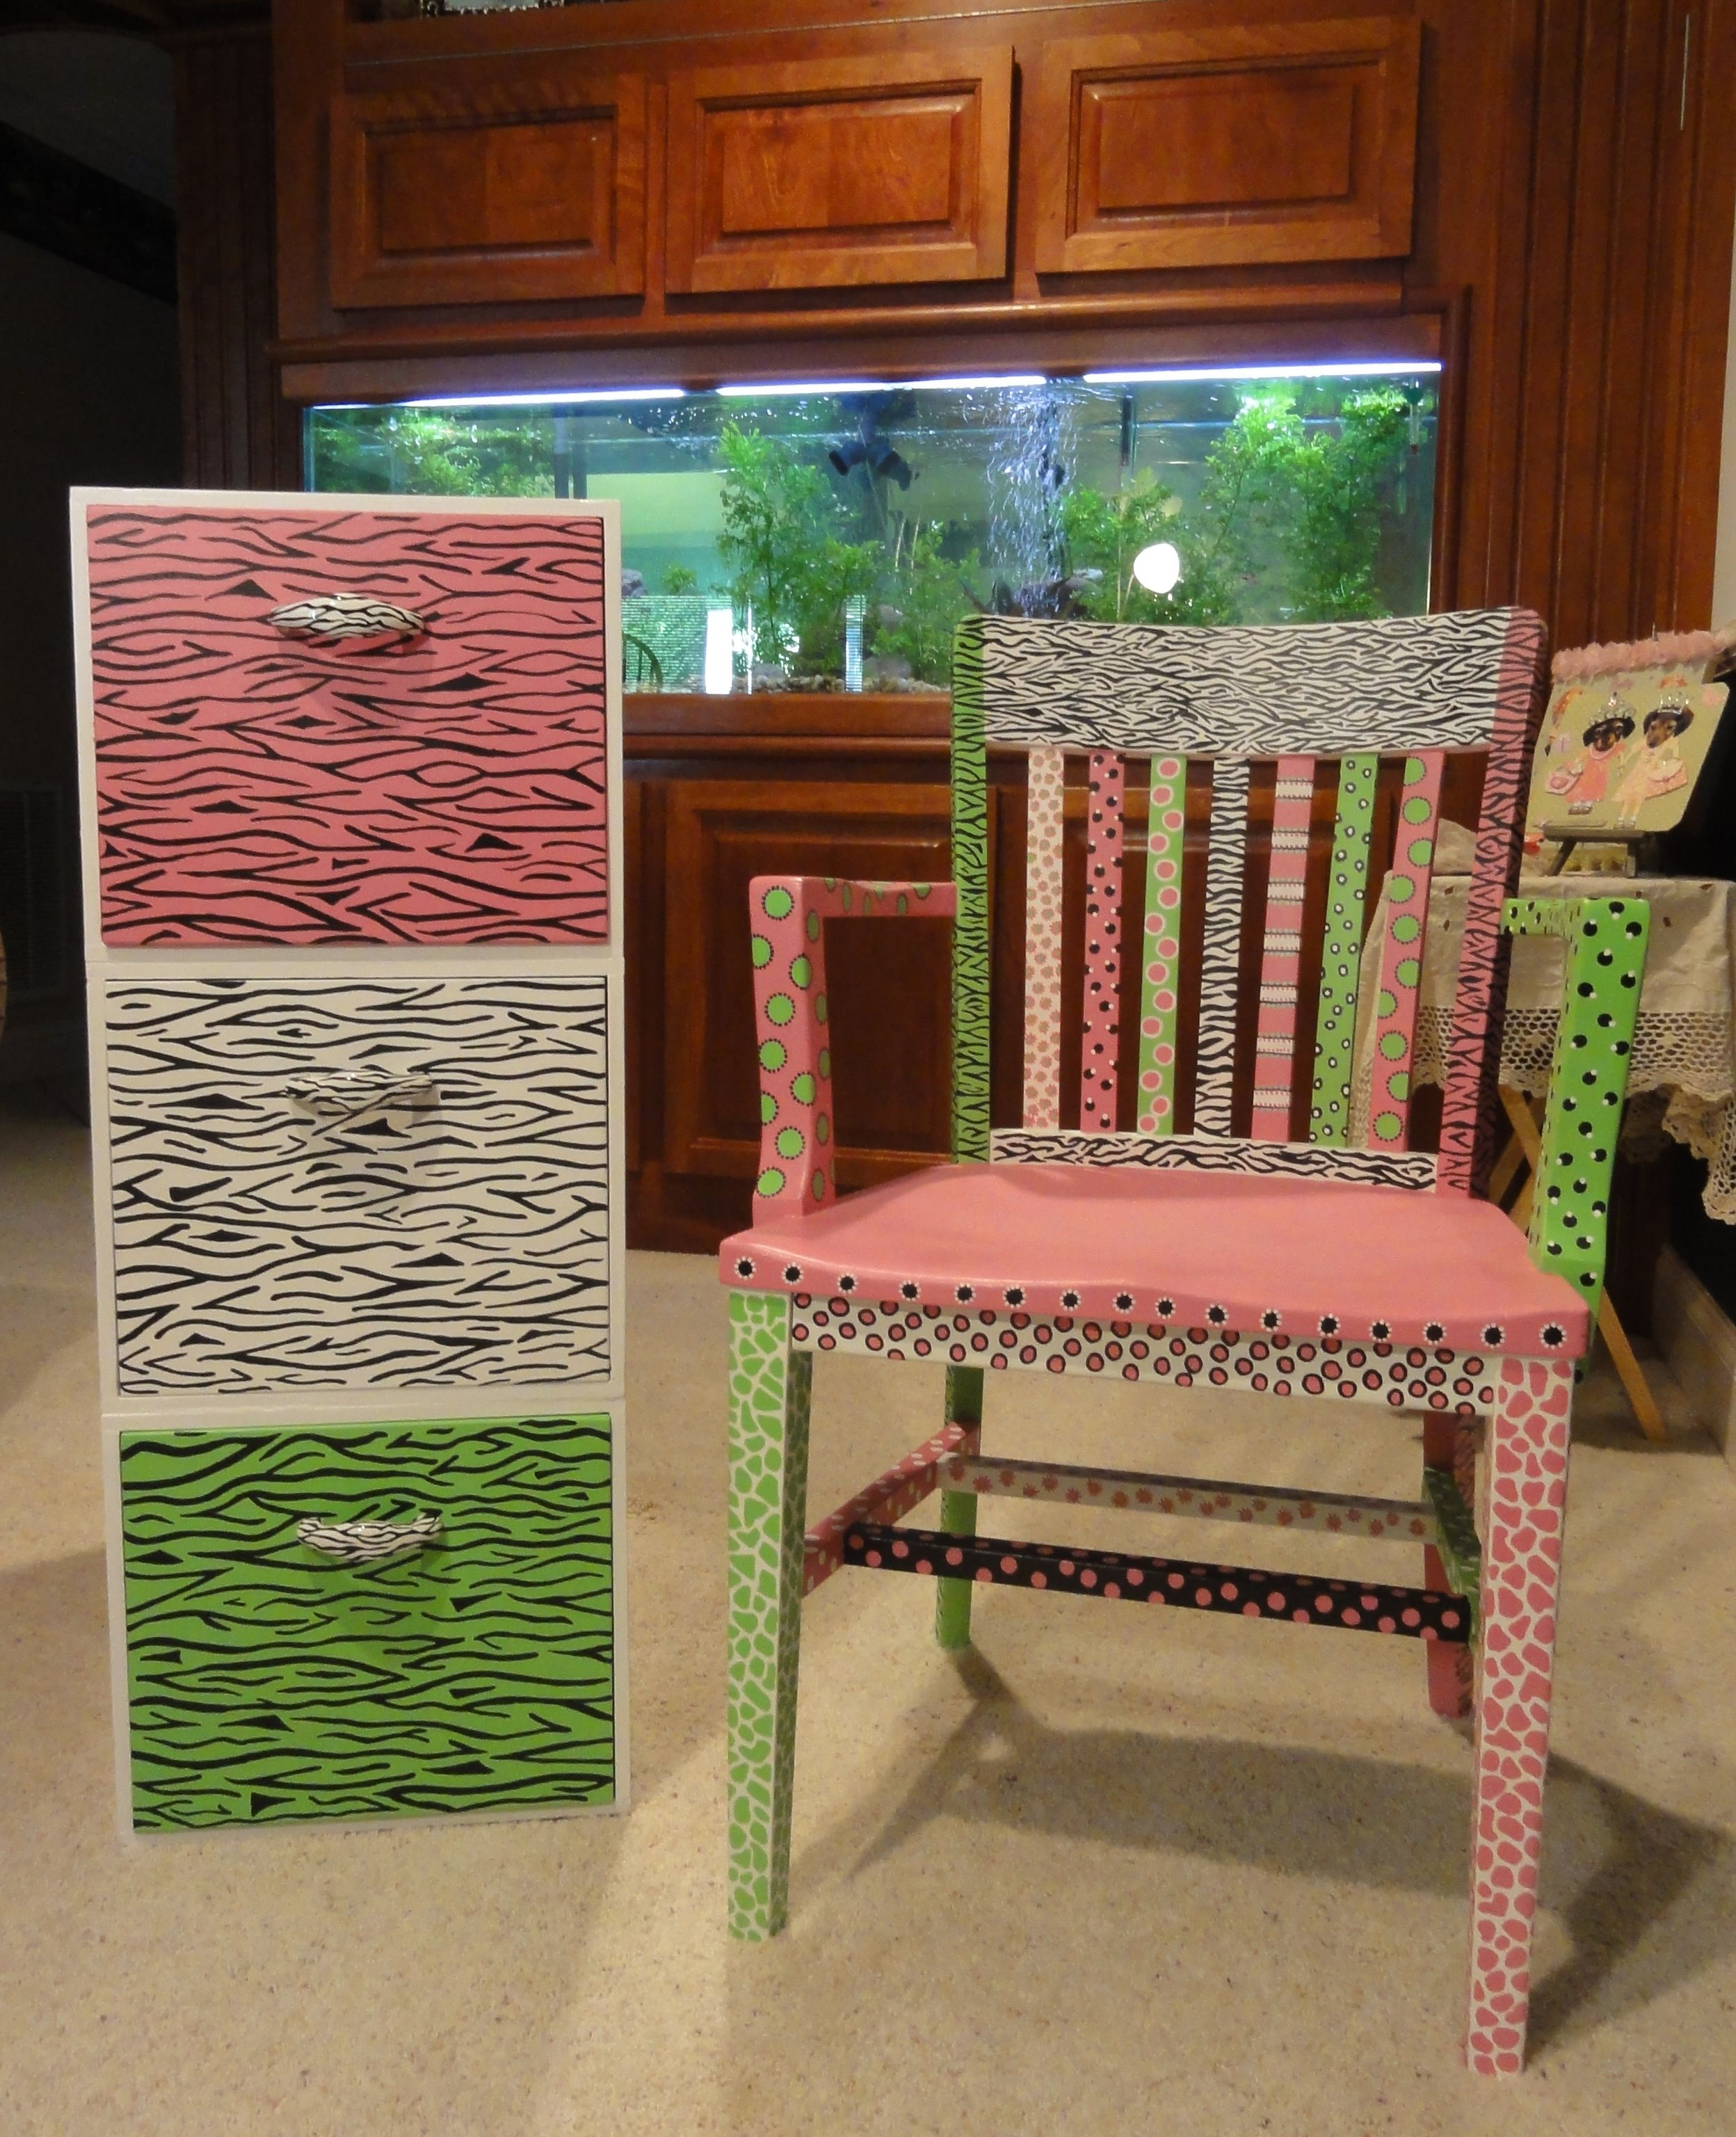 I re-painted an old wooden file cabinet and chair for my craft room